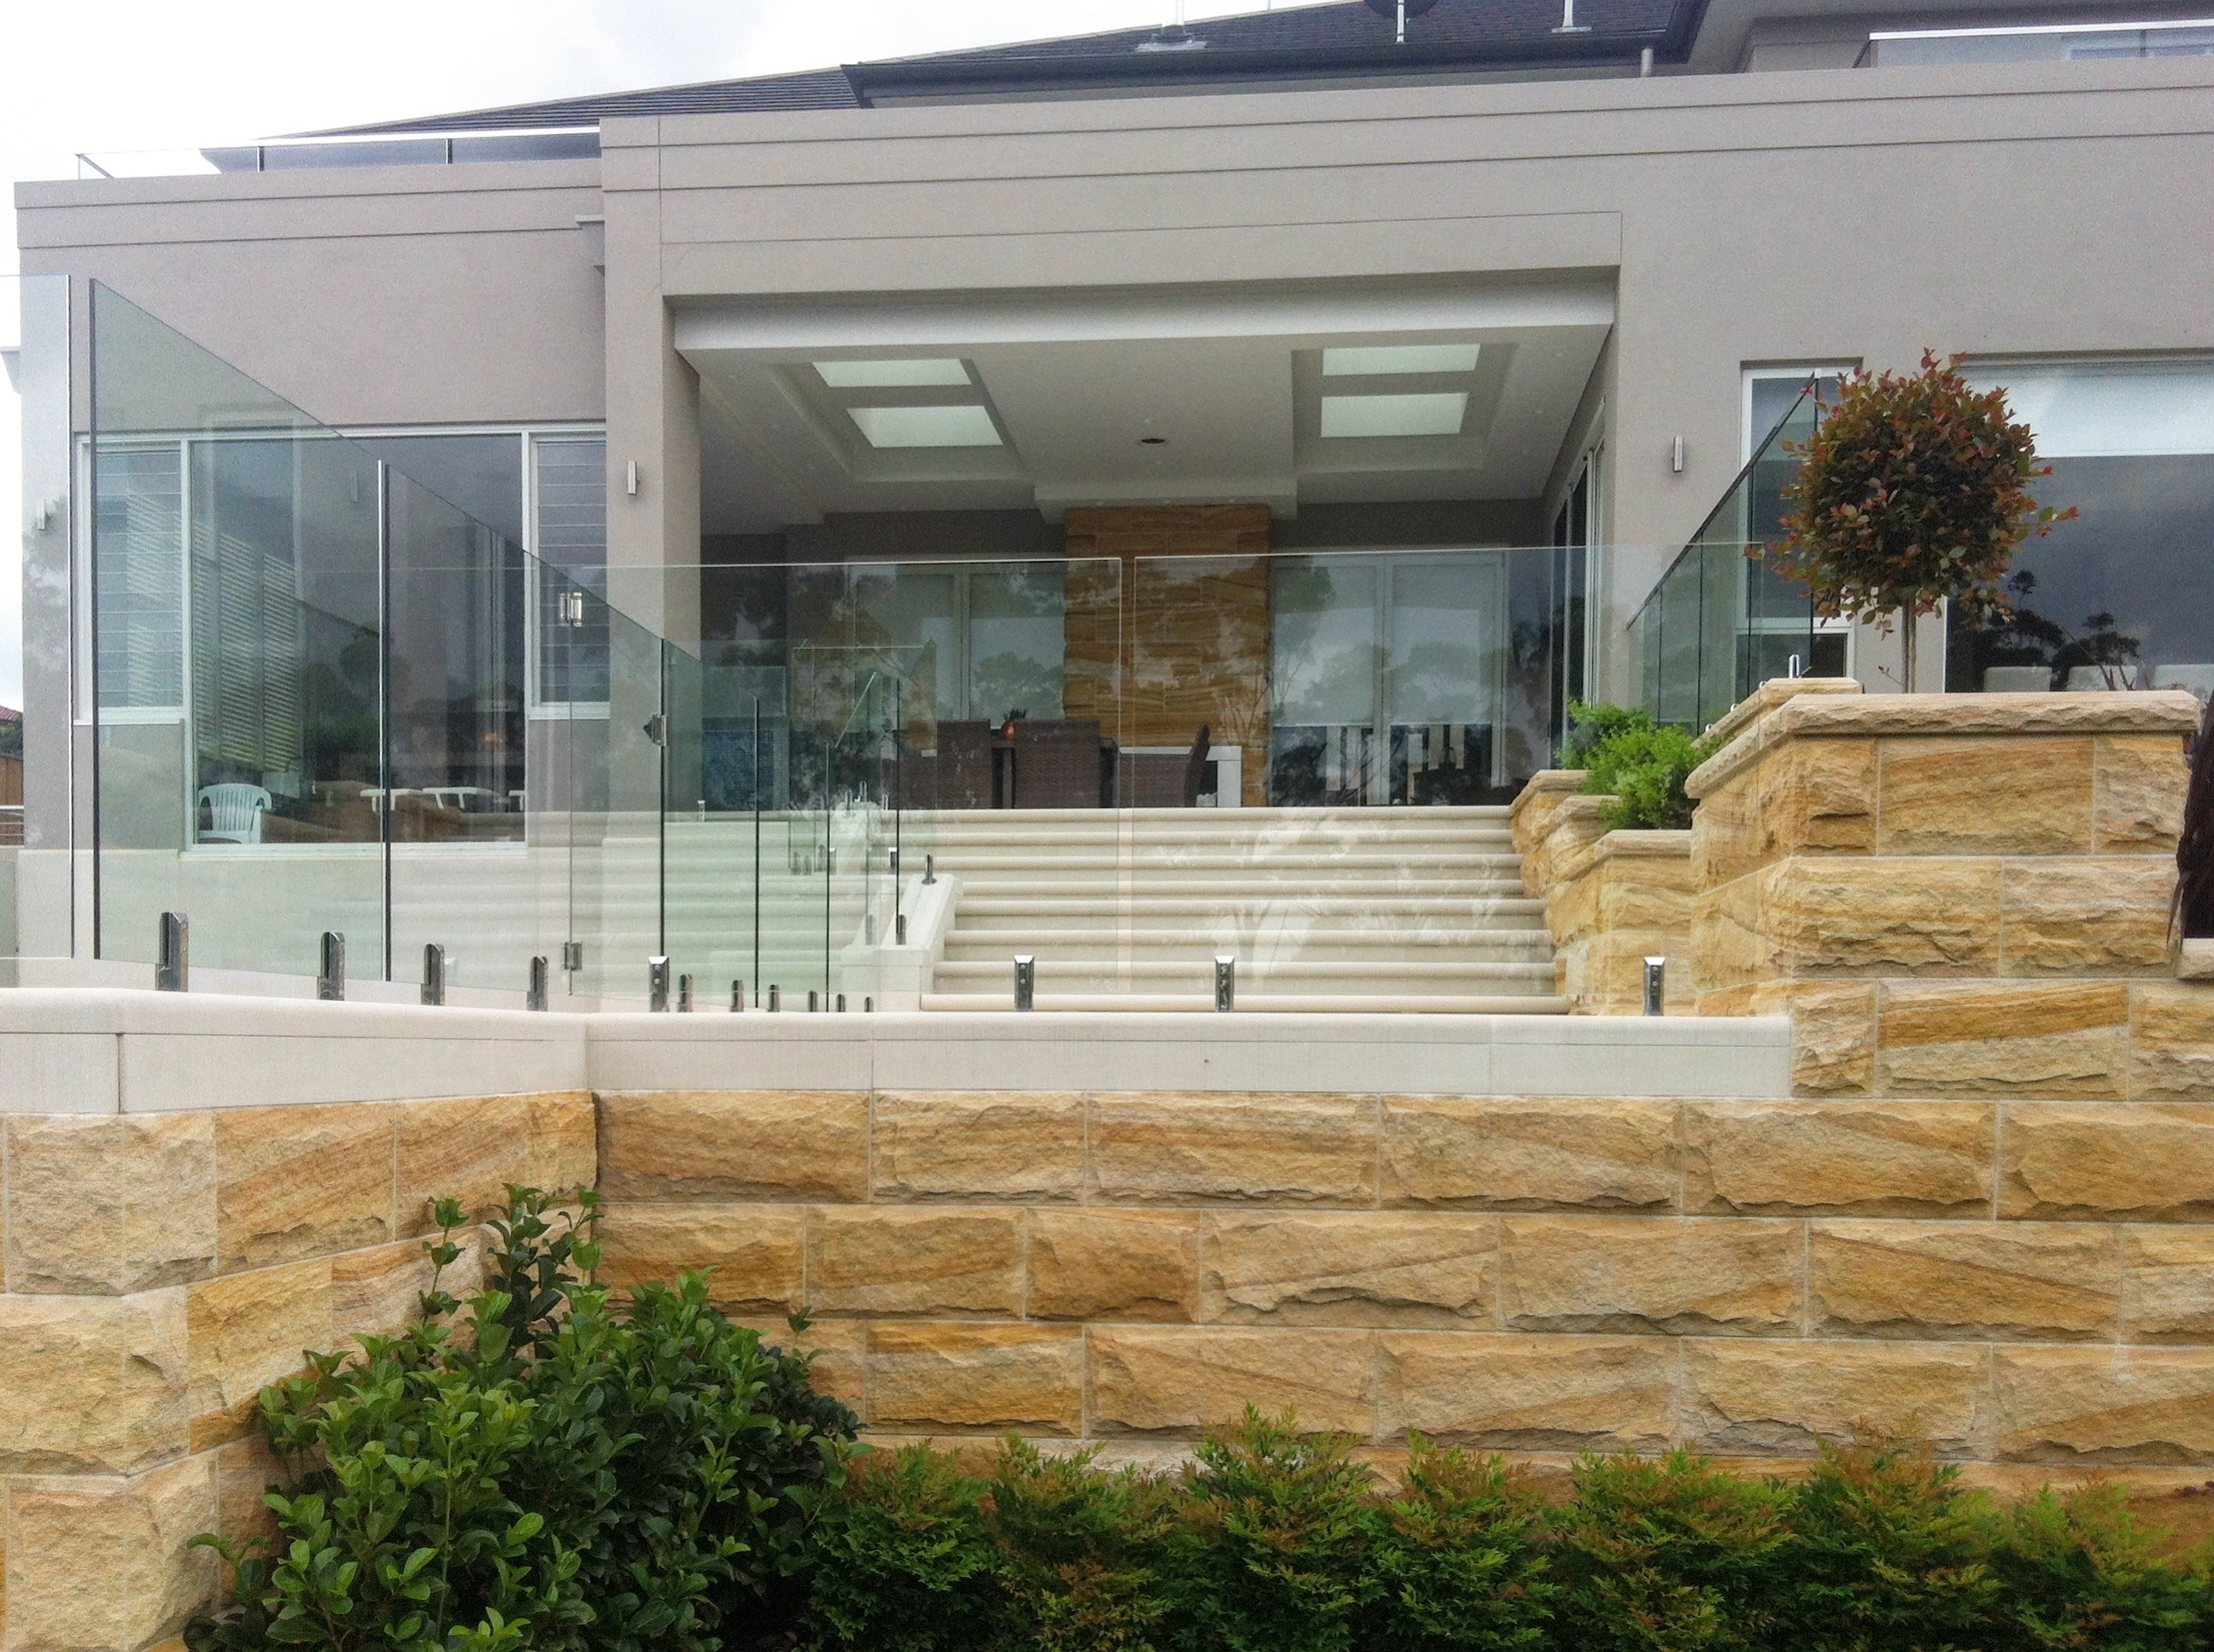 Residential building with a nice stone wall using rockface stone